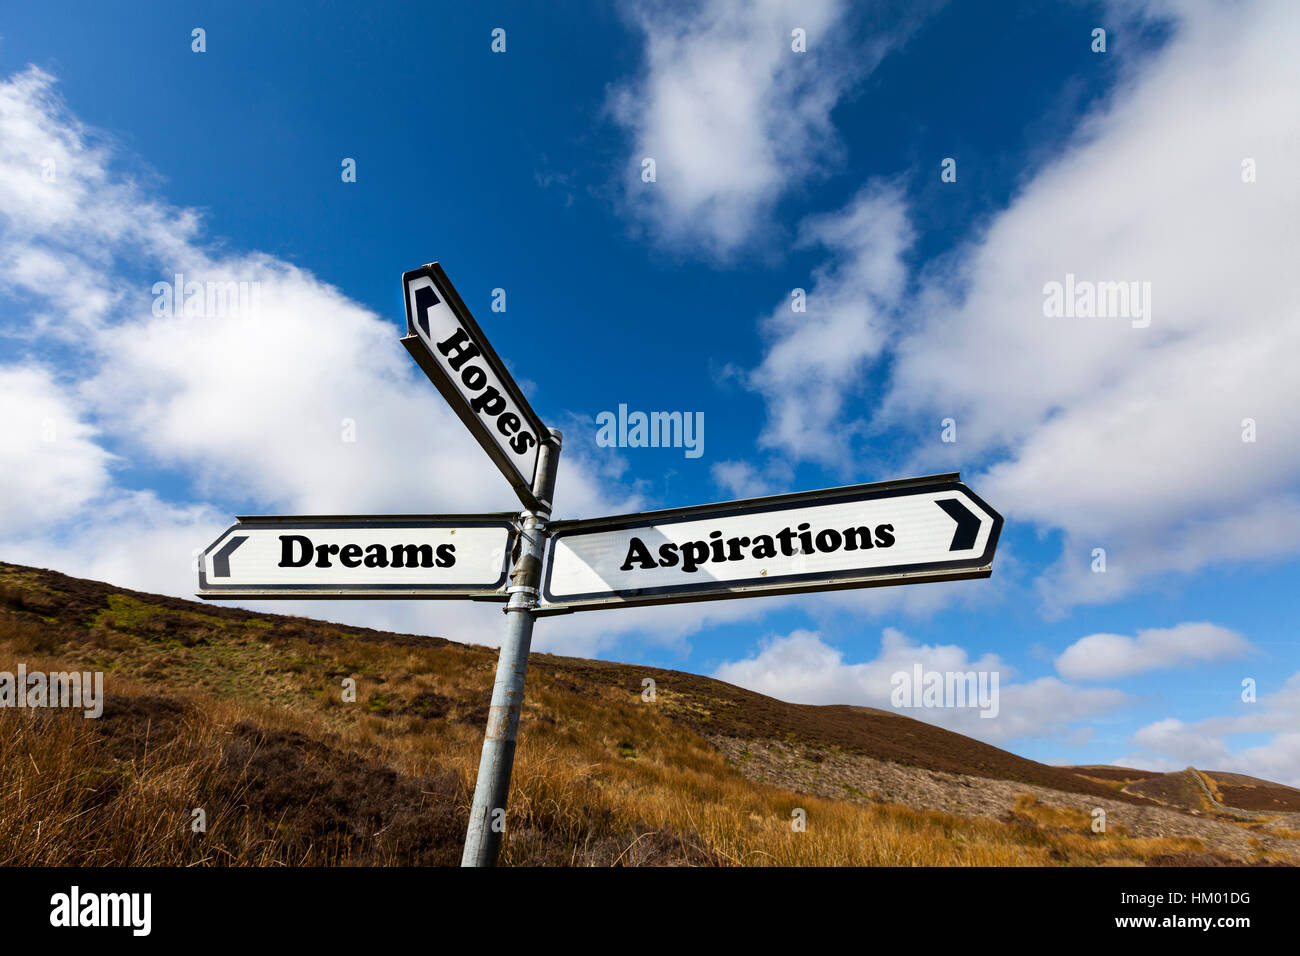 Hopes dreams and aspirations lifestyle choices to make dreams come true - Stock Image